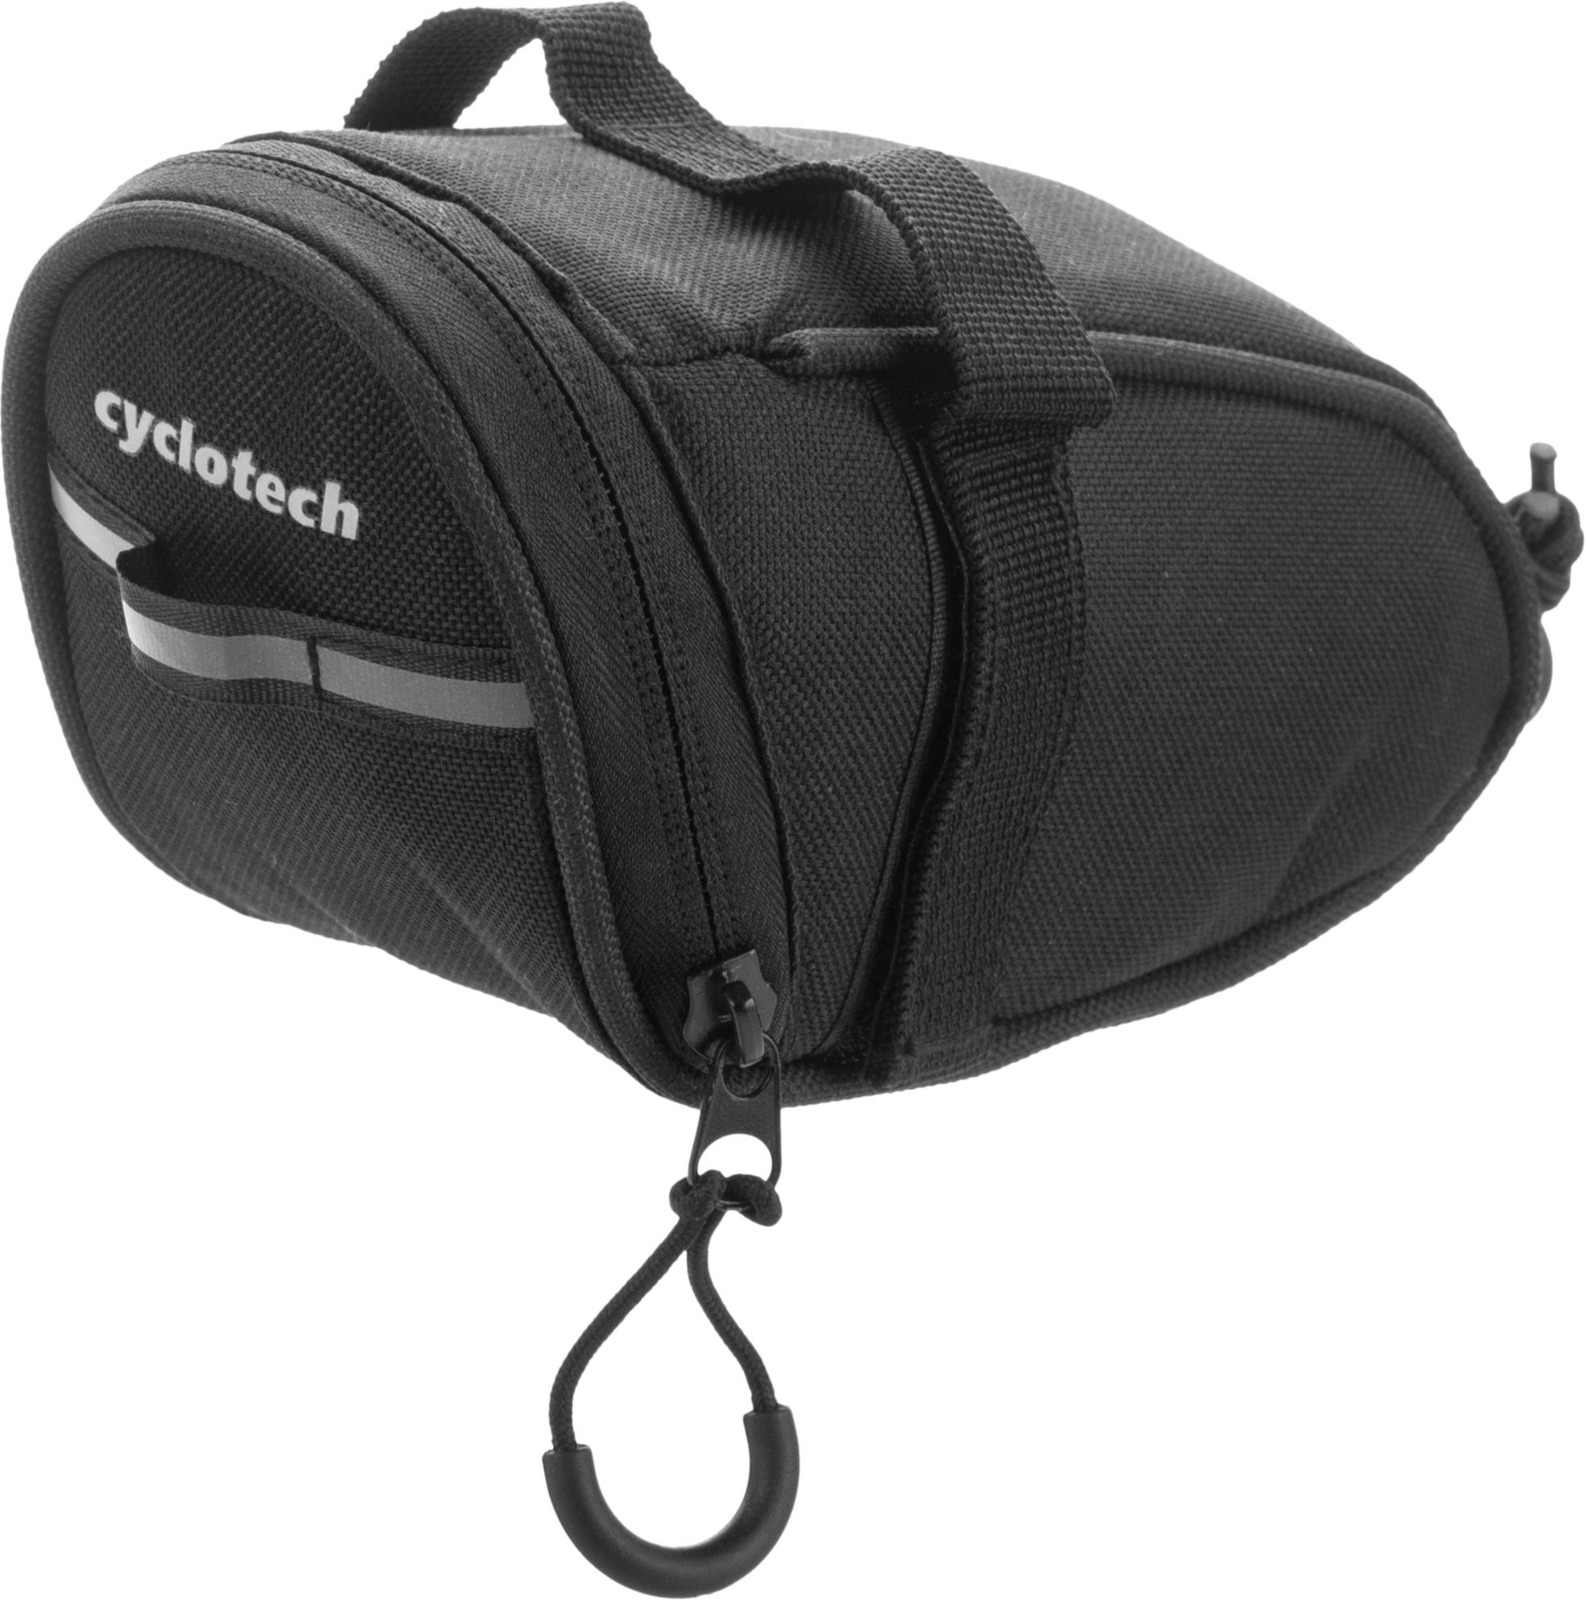 Сумка на велосипед Cyclotech CYC-6B Bicycle Bag, черный